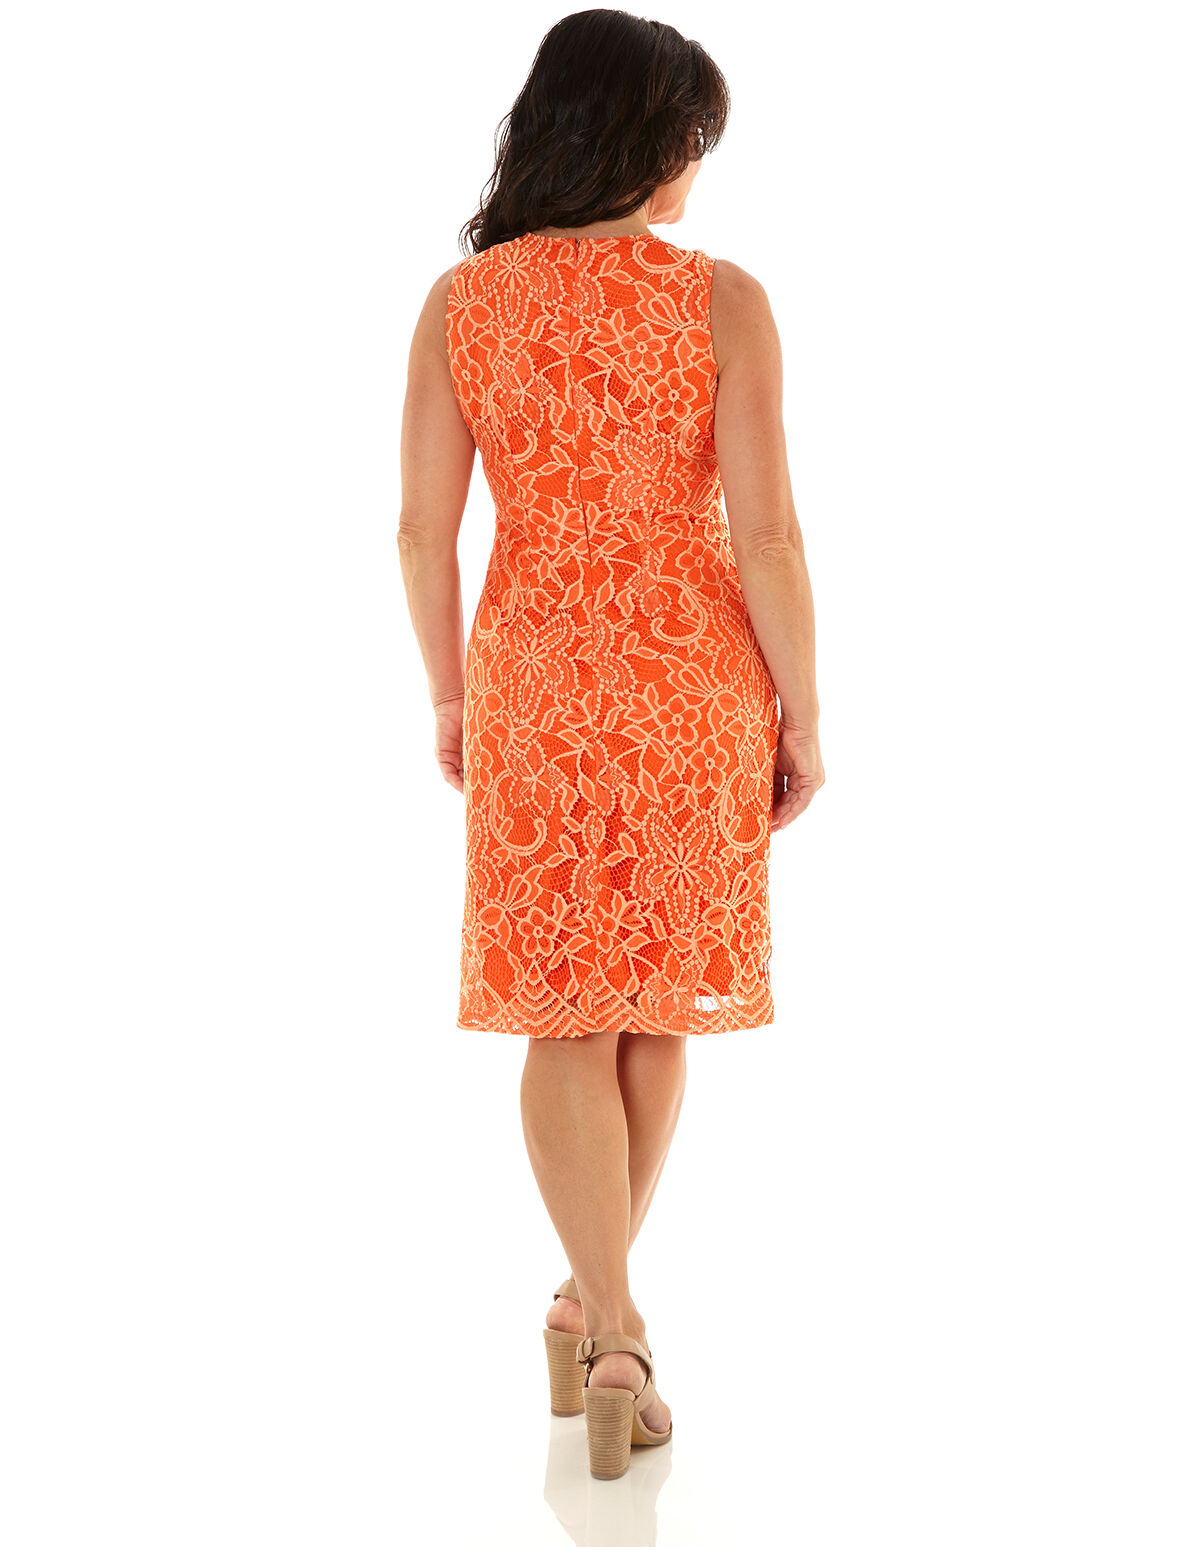 Looking for Sheath Dresses